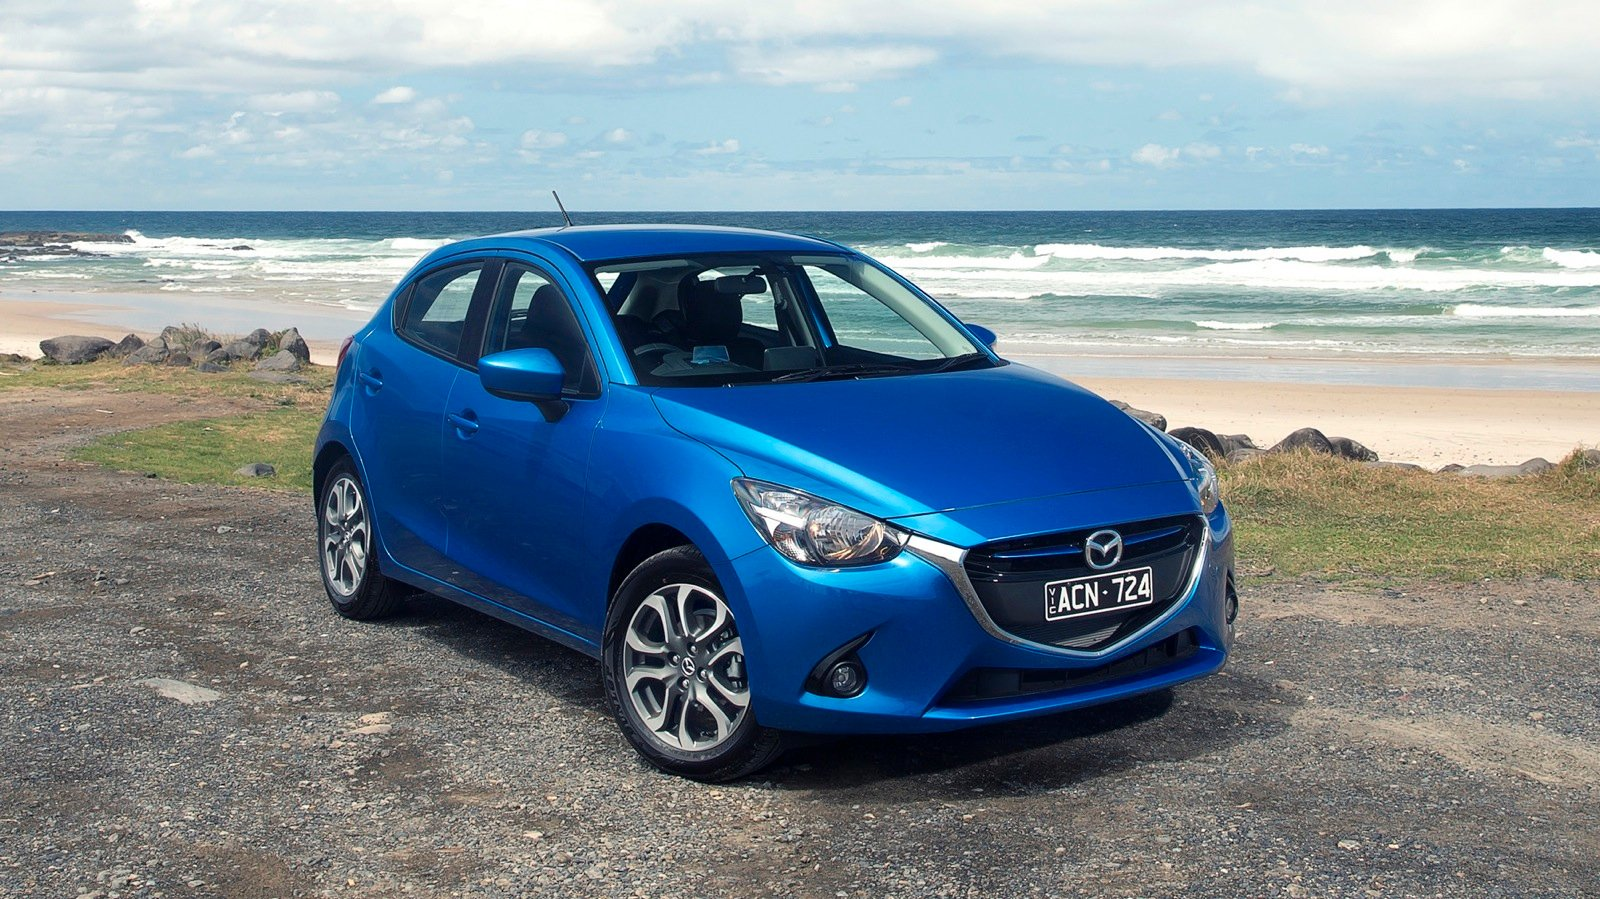 2015 mazda 2 review first australian drive caradvice. Black Bedroom Furniture Sets. Home Design Ideas